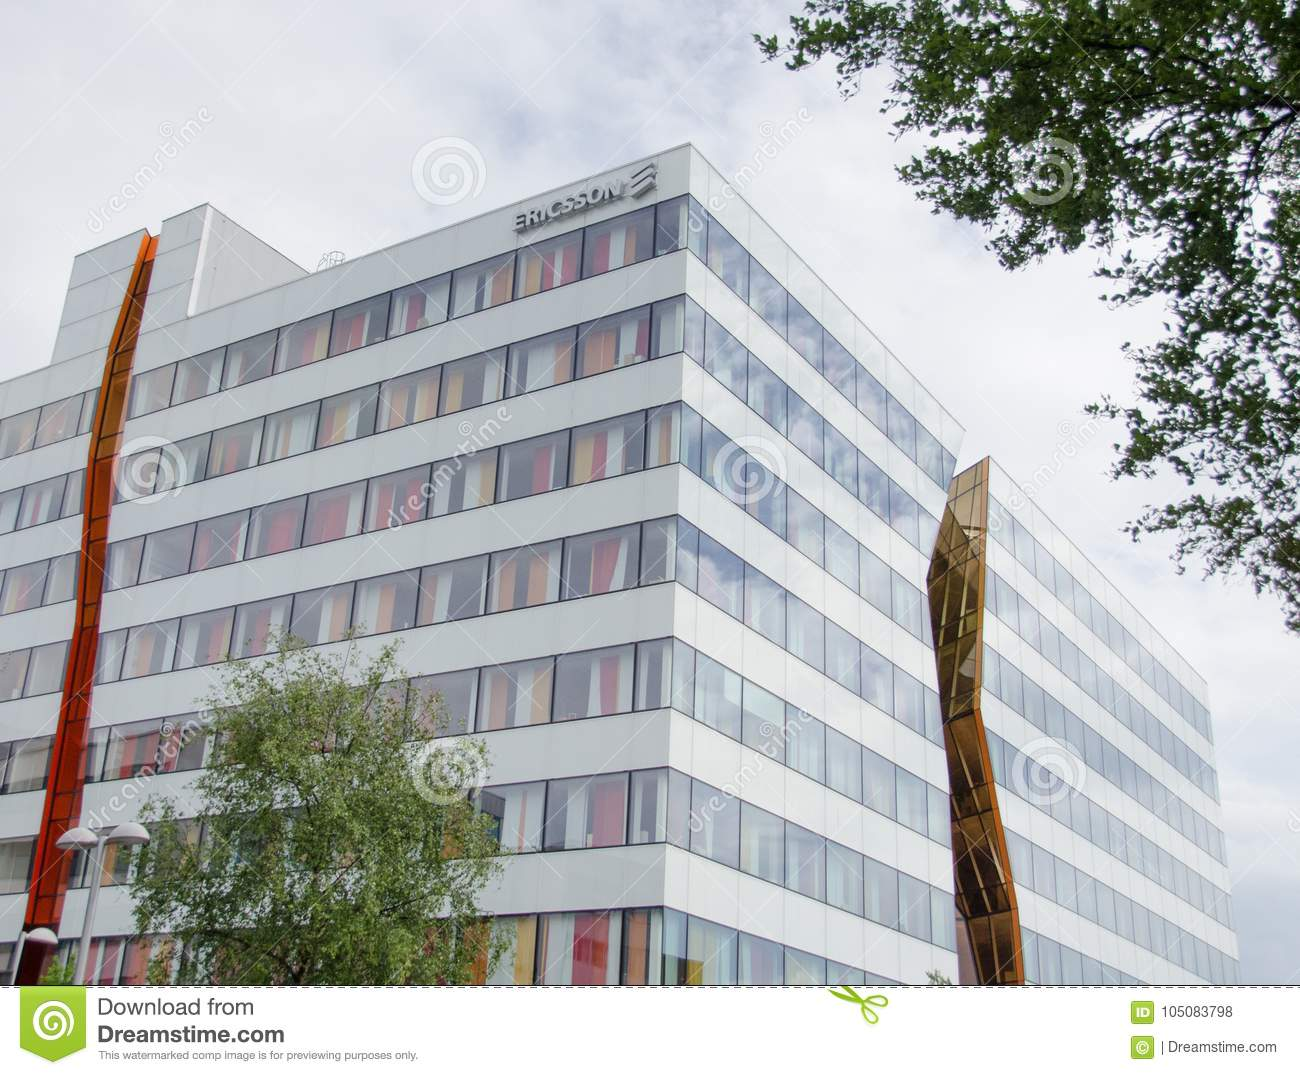 Ericsson Office Building In Kista Editorial Stock Photo - Image of